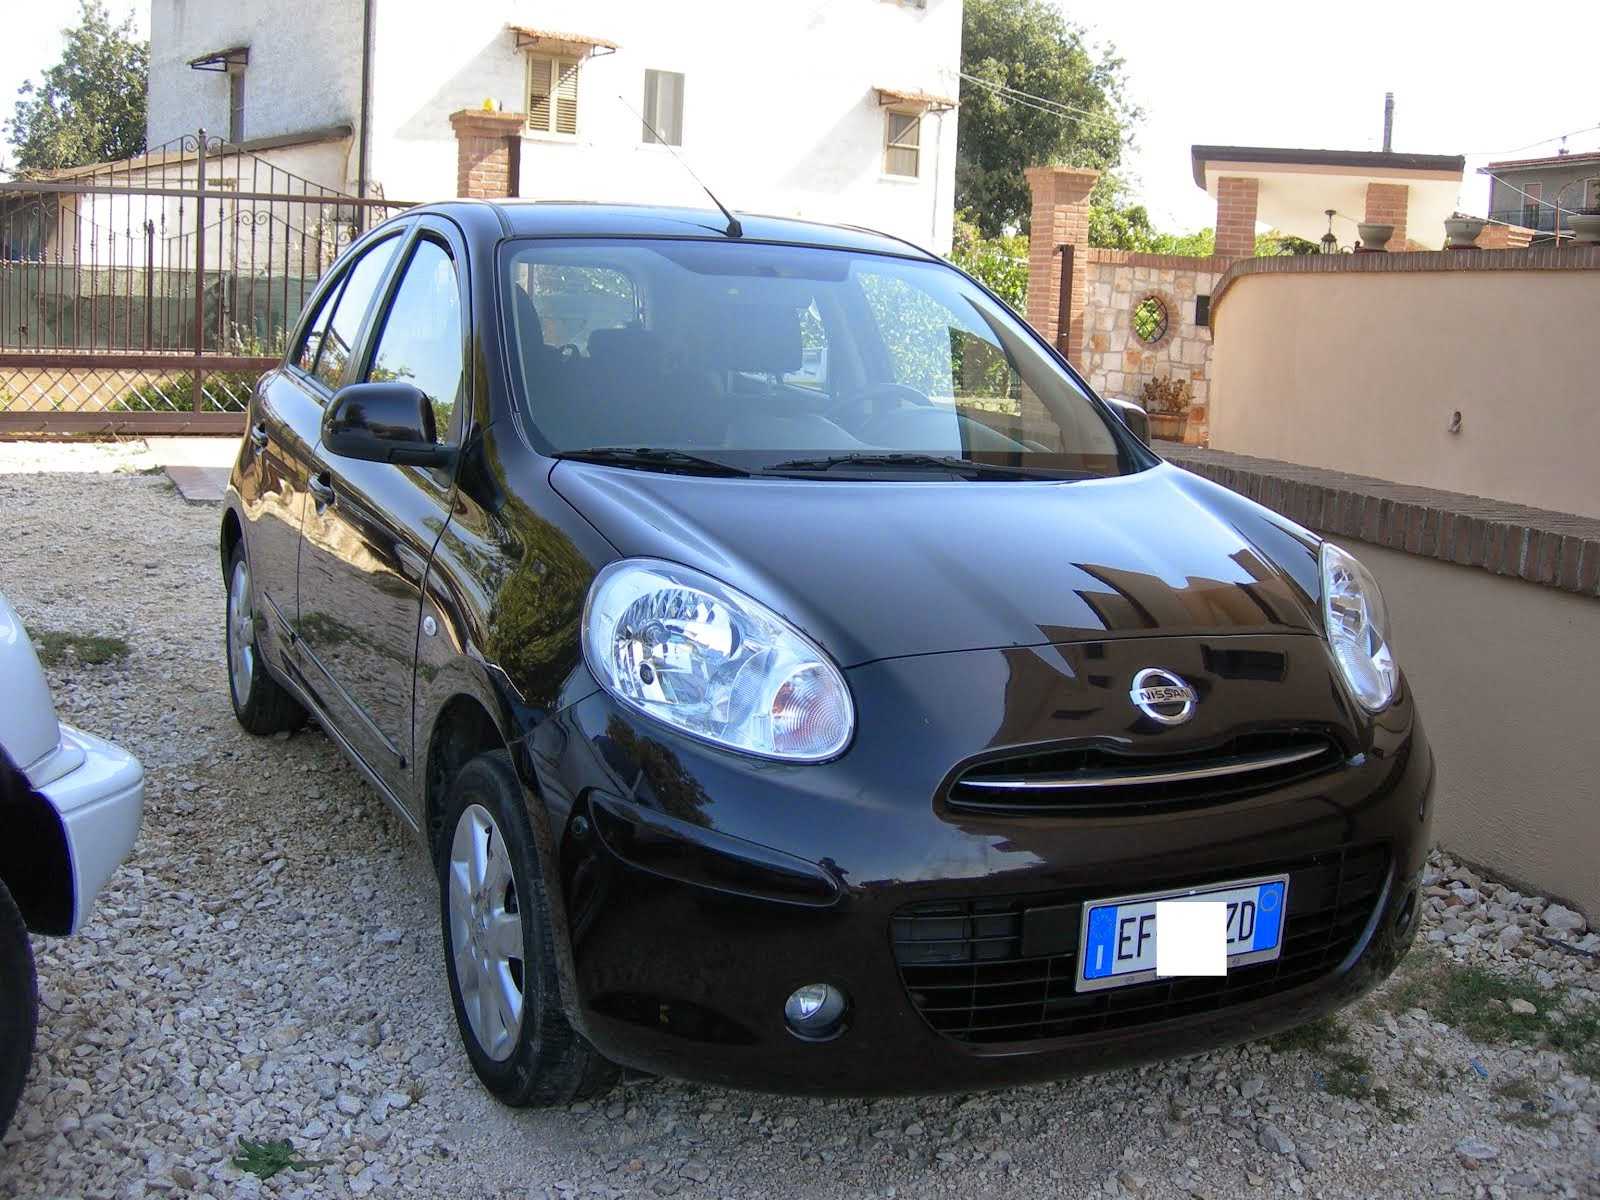 Nissan Micra 1.2 80 Cv Anno 2011 60.000 km acc:Full optional Navi 7.200,00 Euro